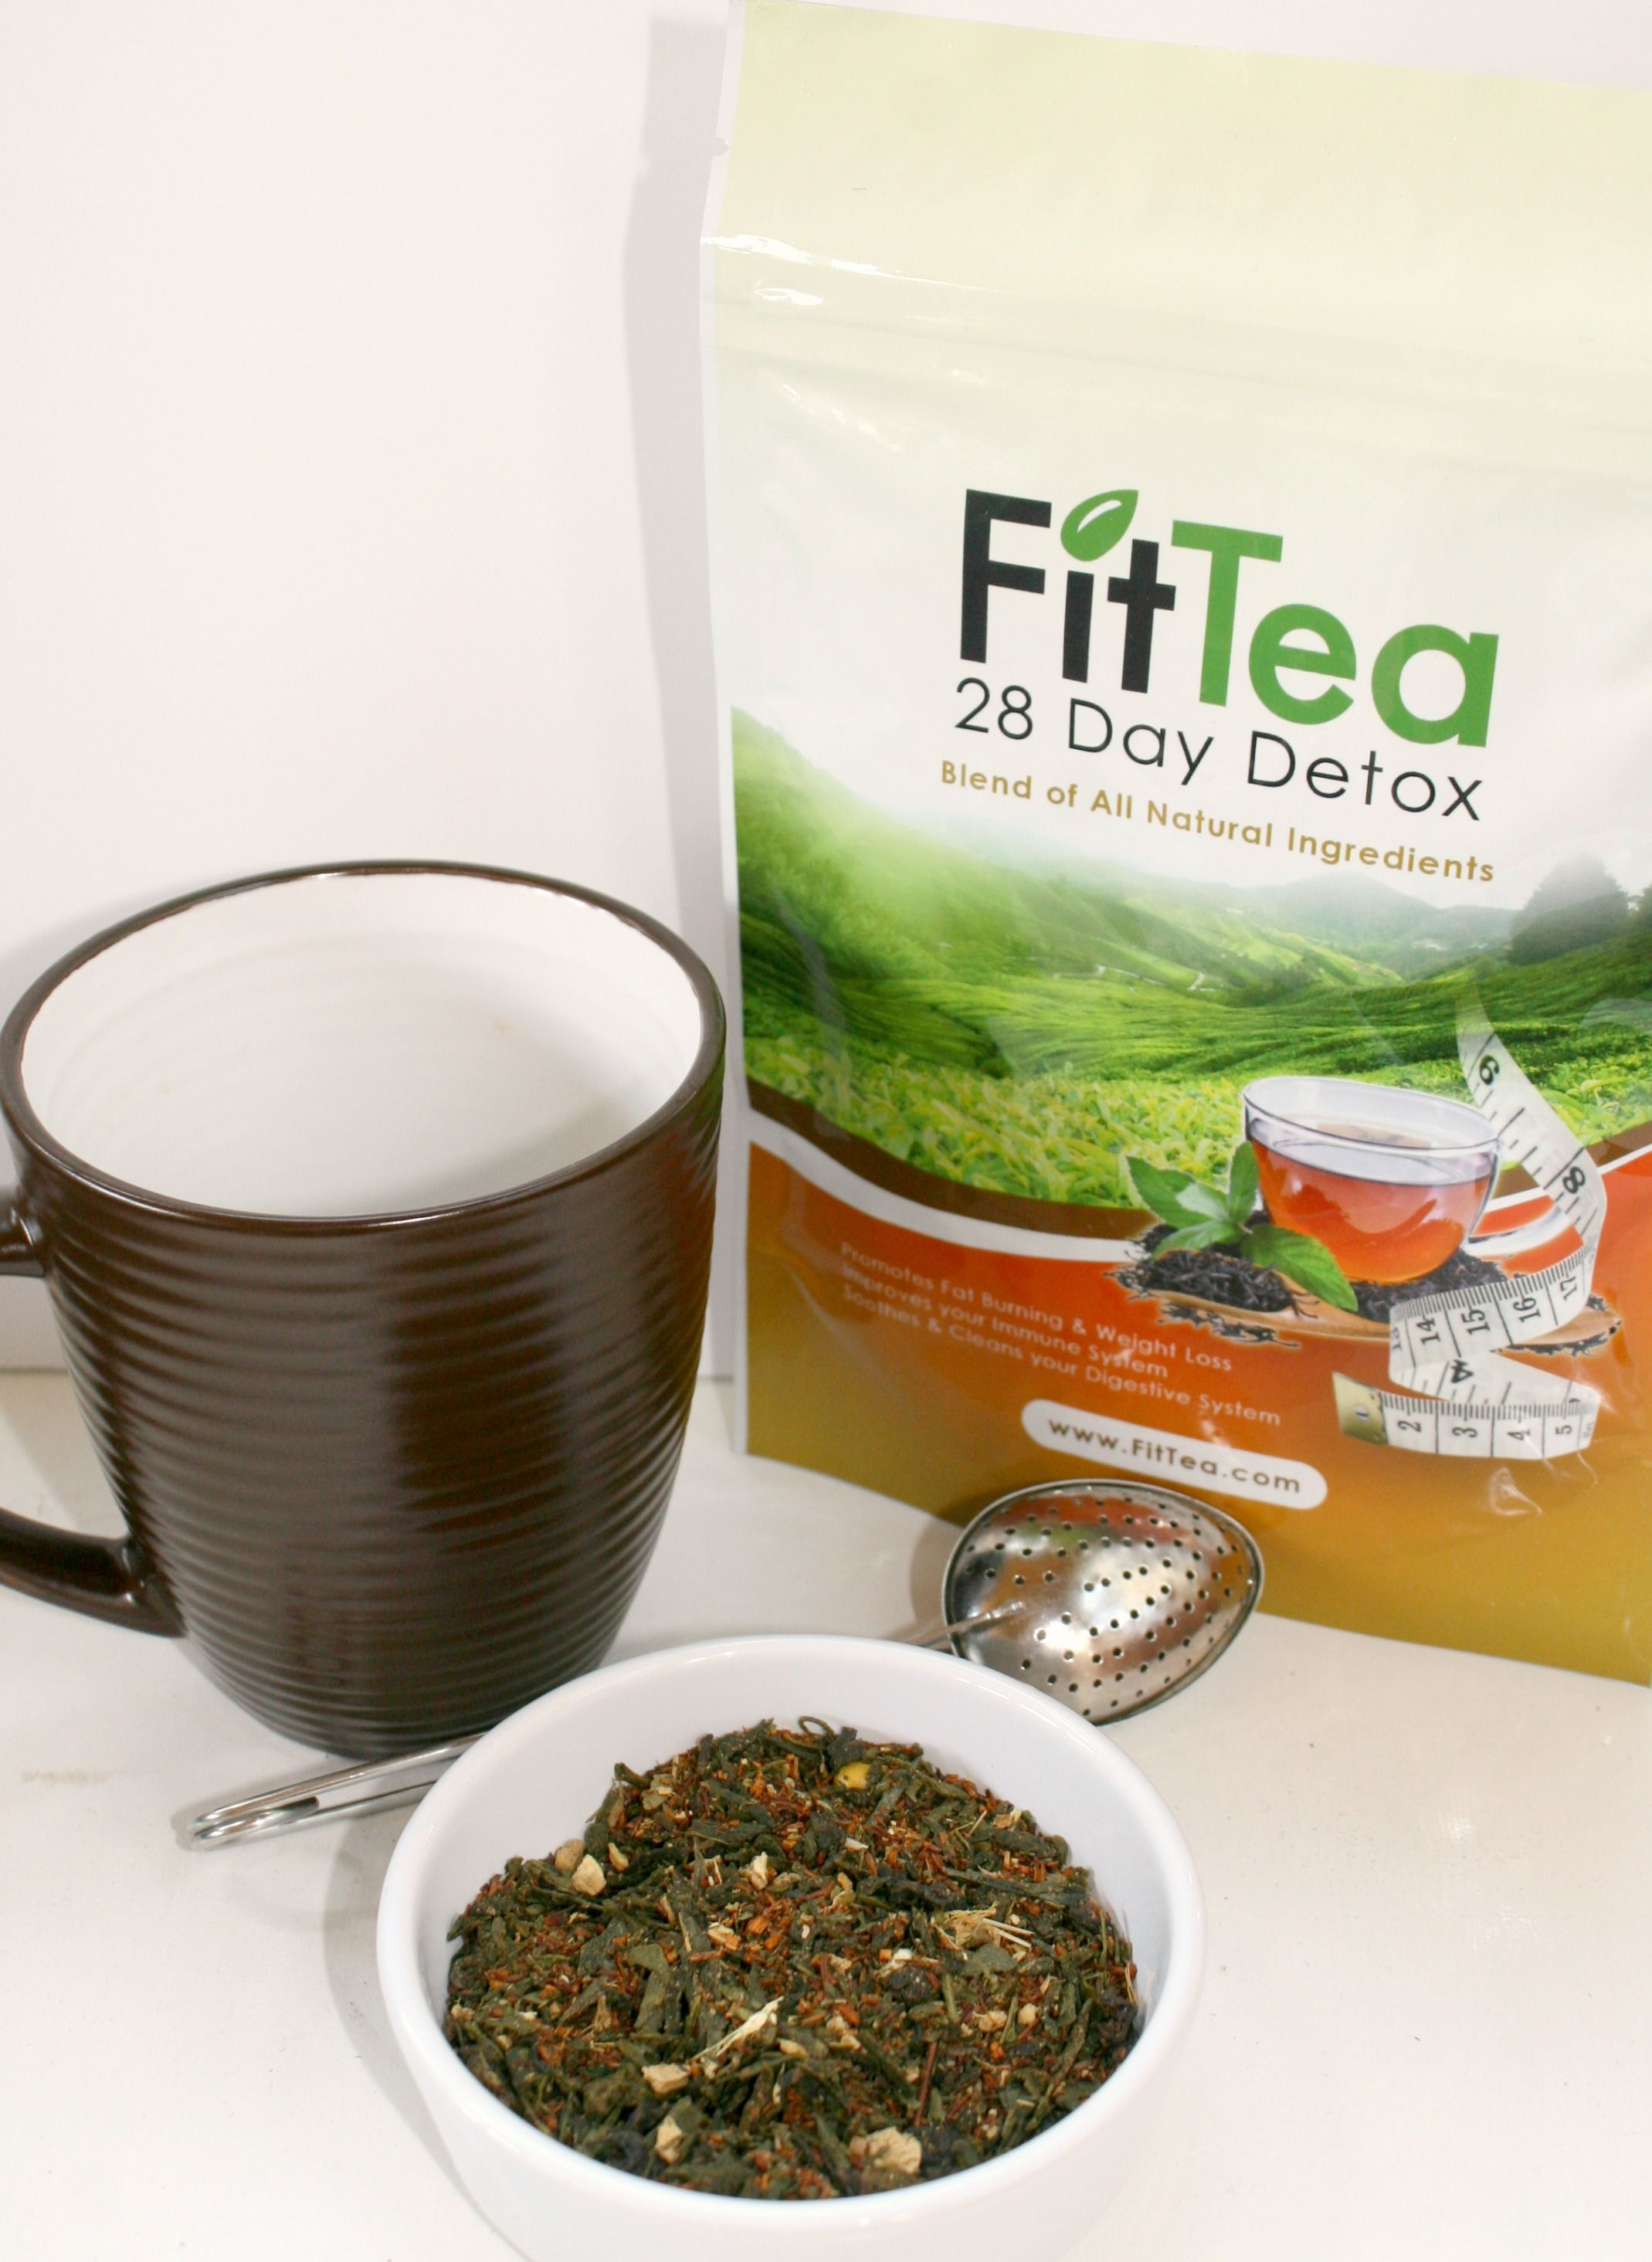 Fit tea is amazing for keeping in top shape fit tea